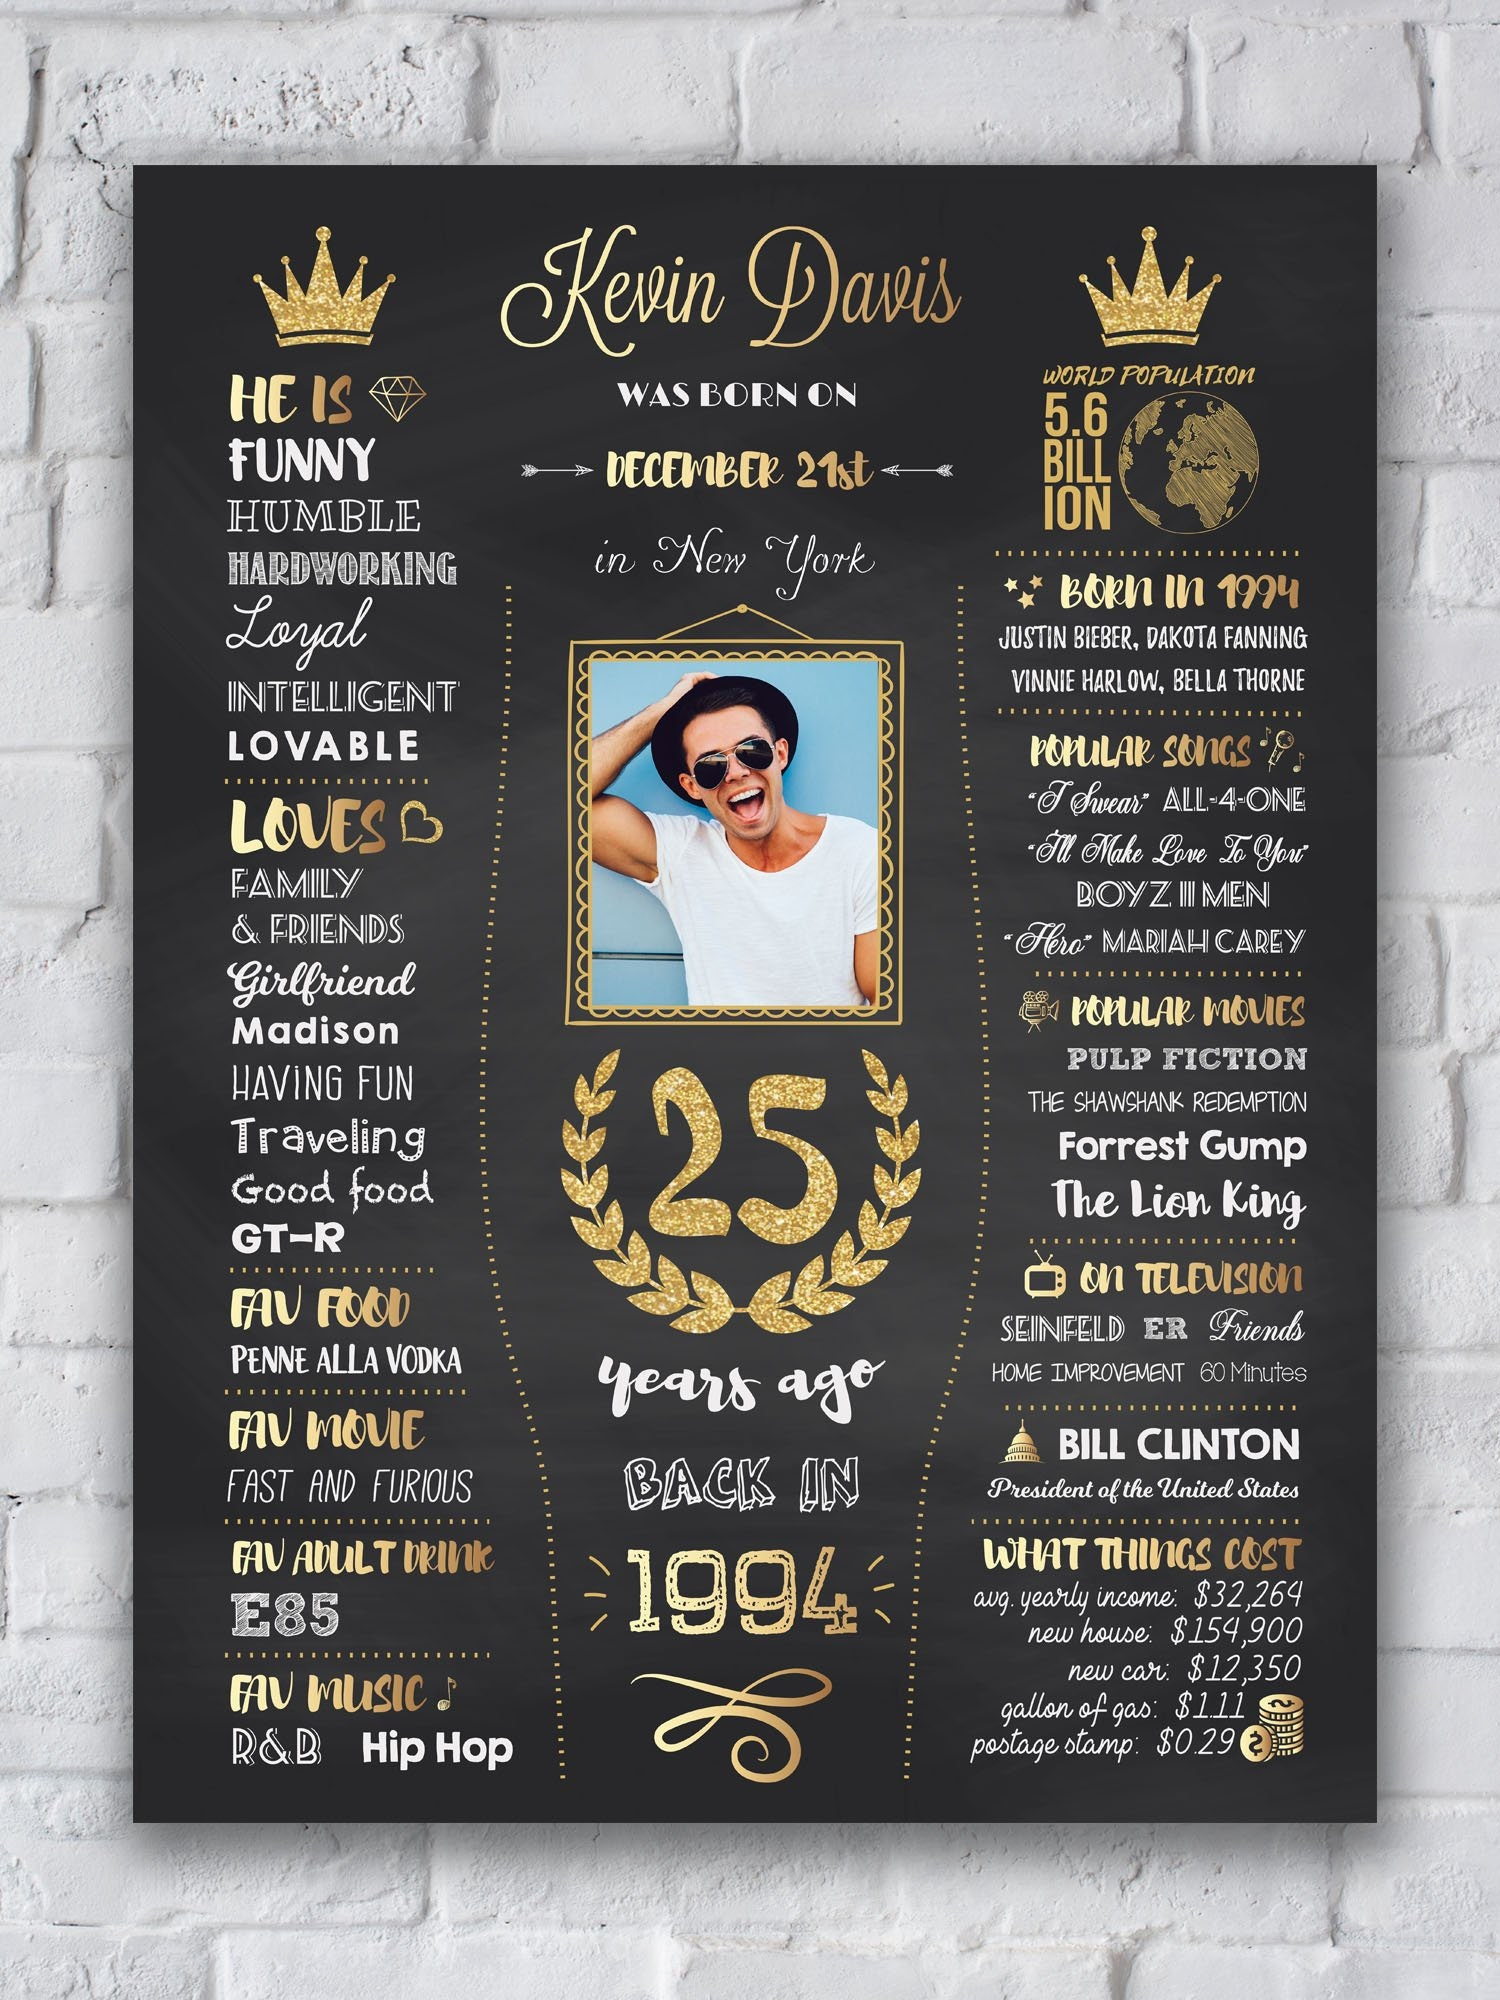 25th Birthday Gift Poster For HIM HER 1994 Sign Back In Man Woman Decorations